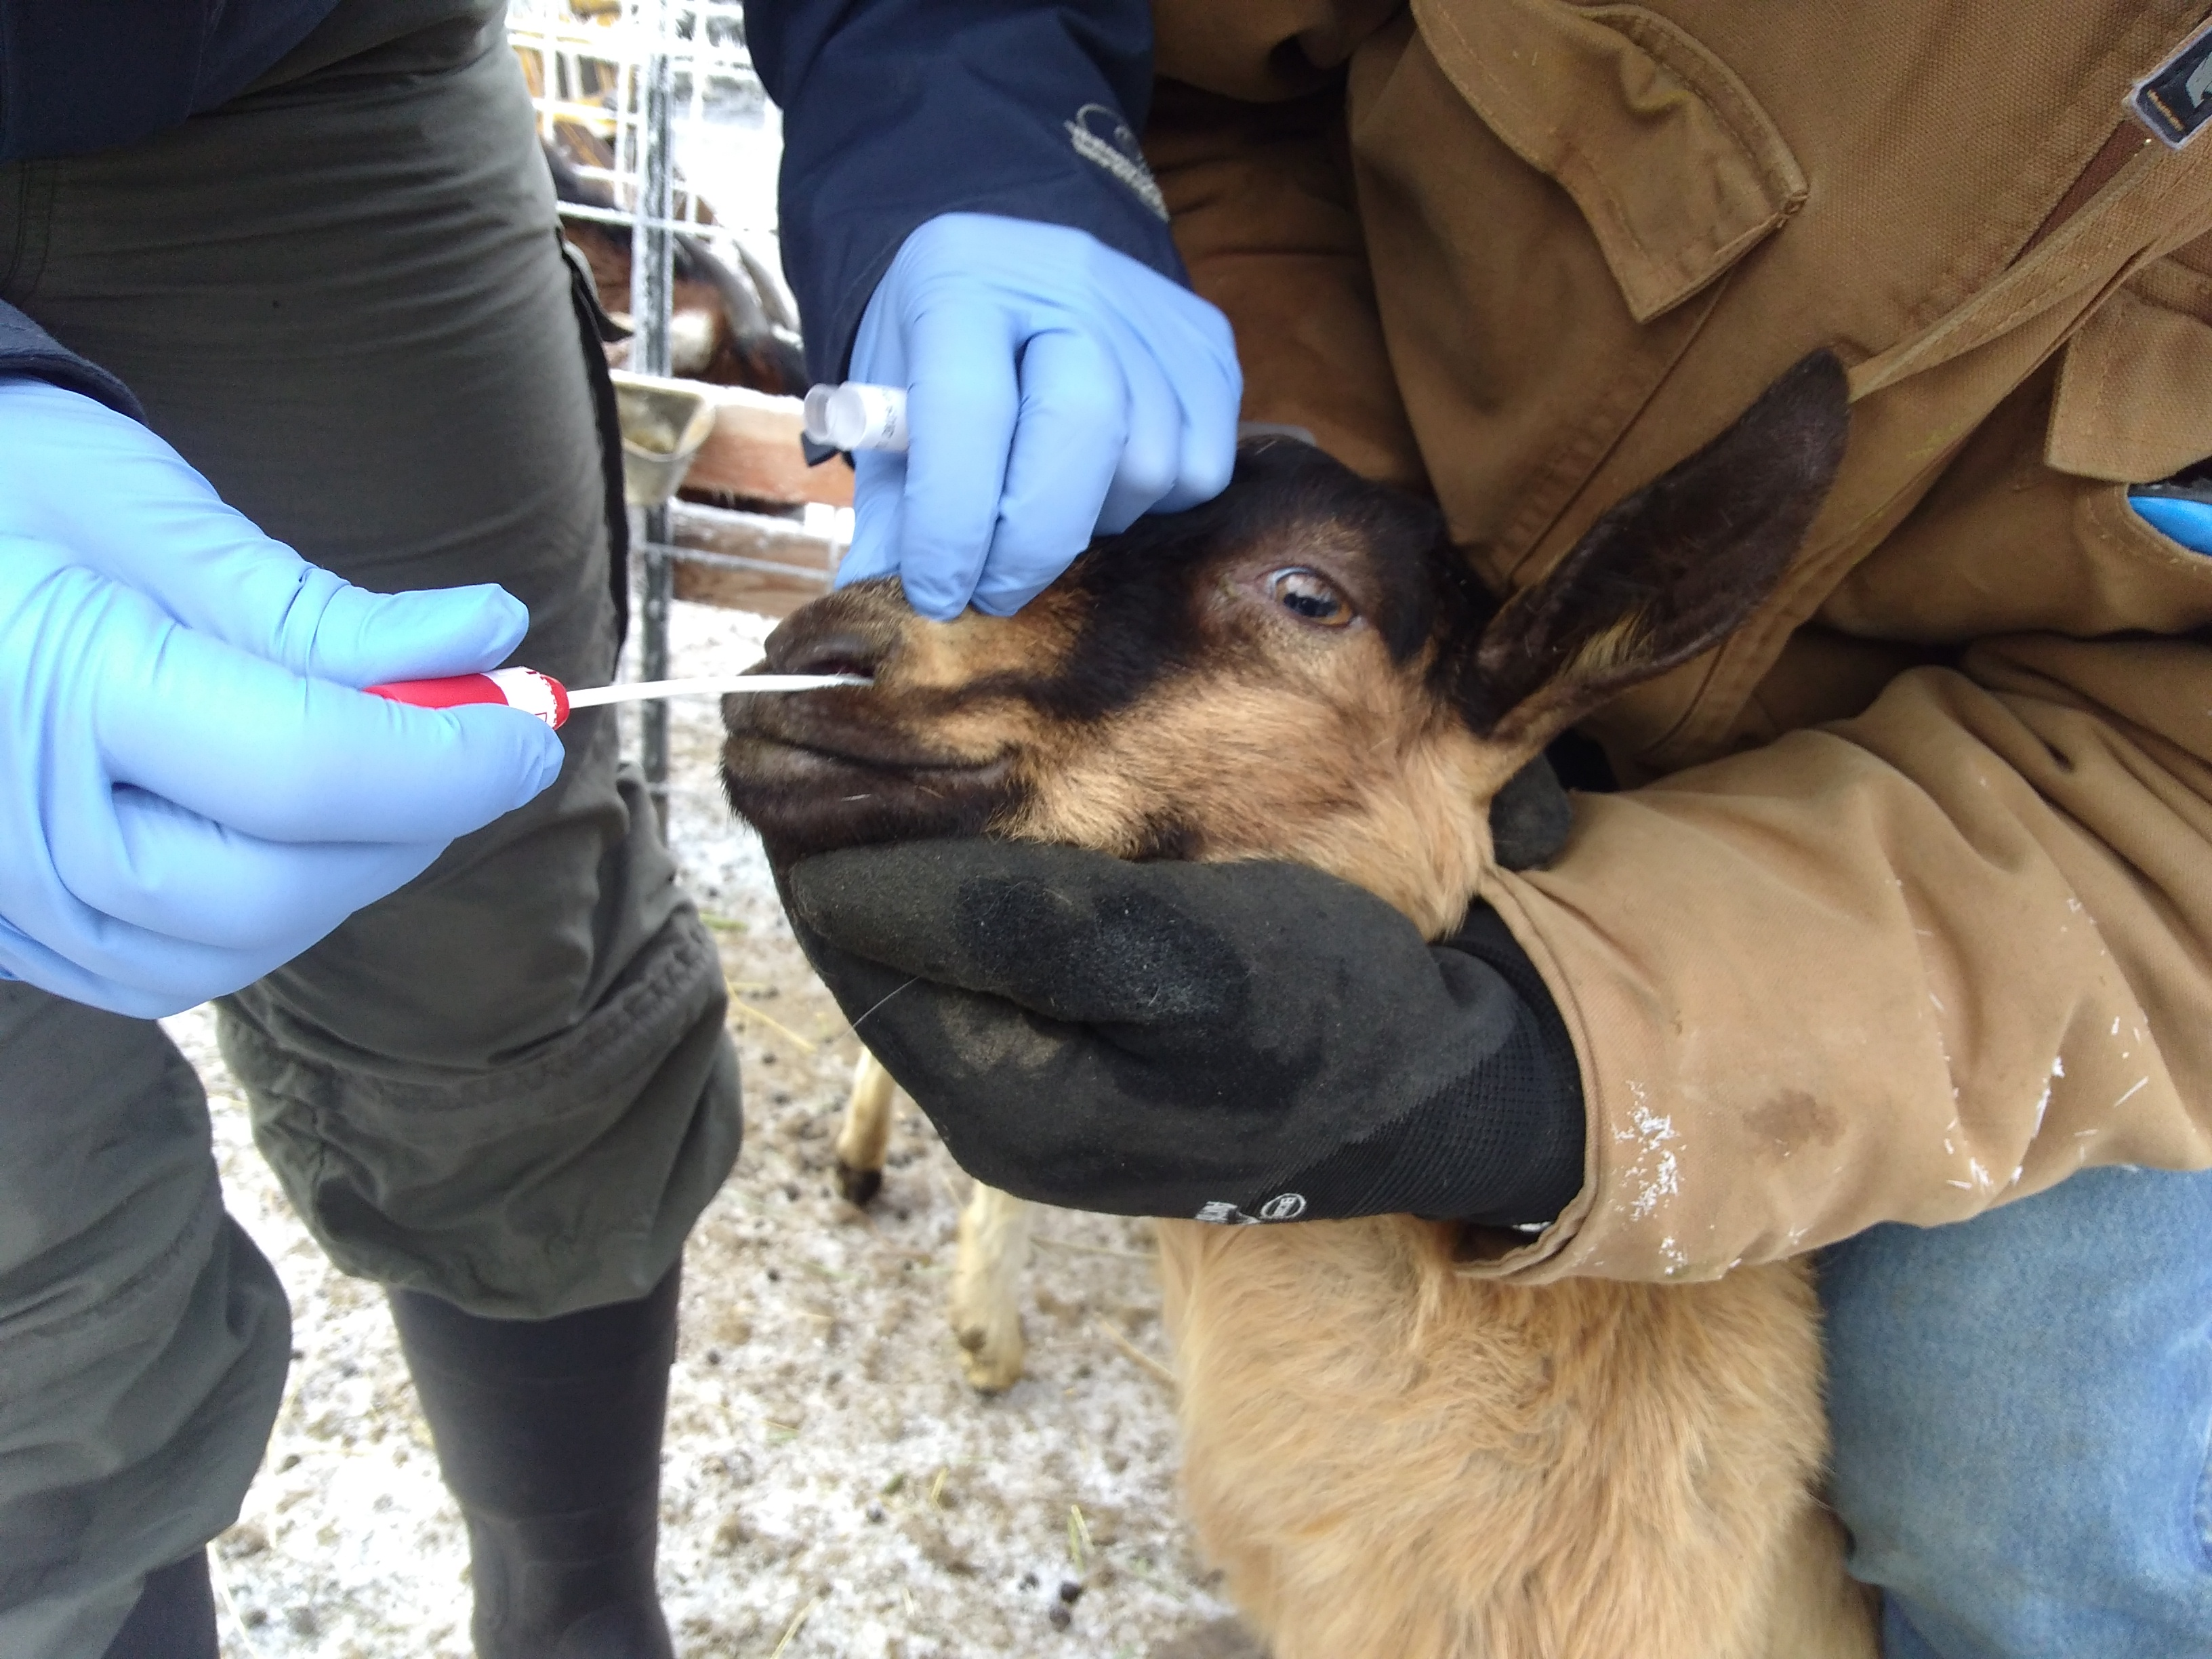 Biosecurity and Goat Husbandry: What You Should Know About M. ovipneumoniae